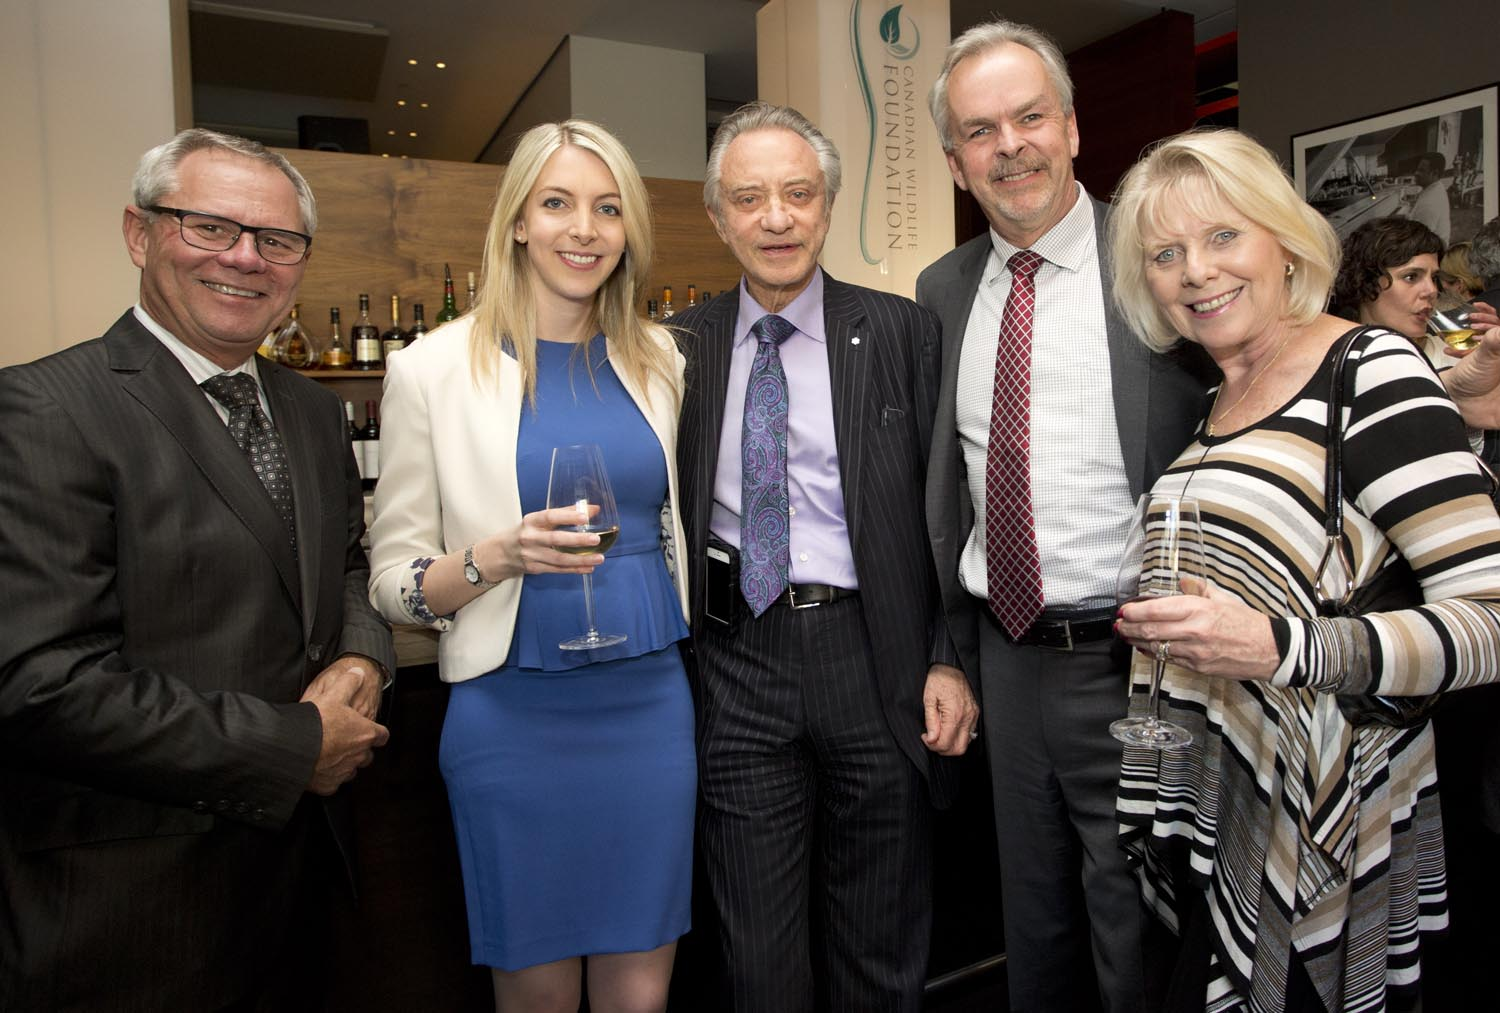 Foundation Trustee Mr. Rick Brace, Ms. Danika Zrebiec, Mr. Paul Godfrey and Bruce & Yvonne MacKay